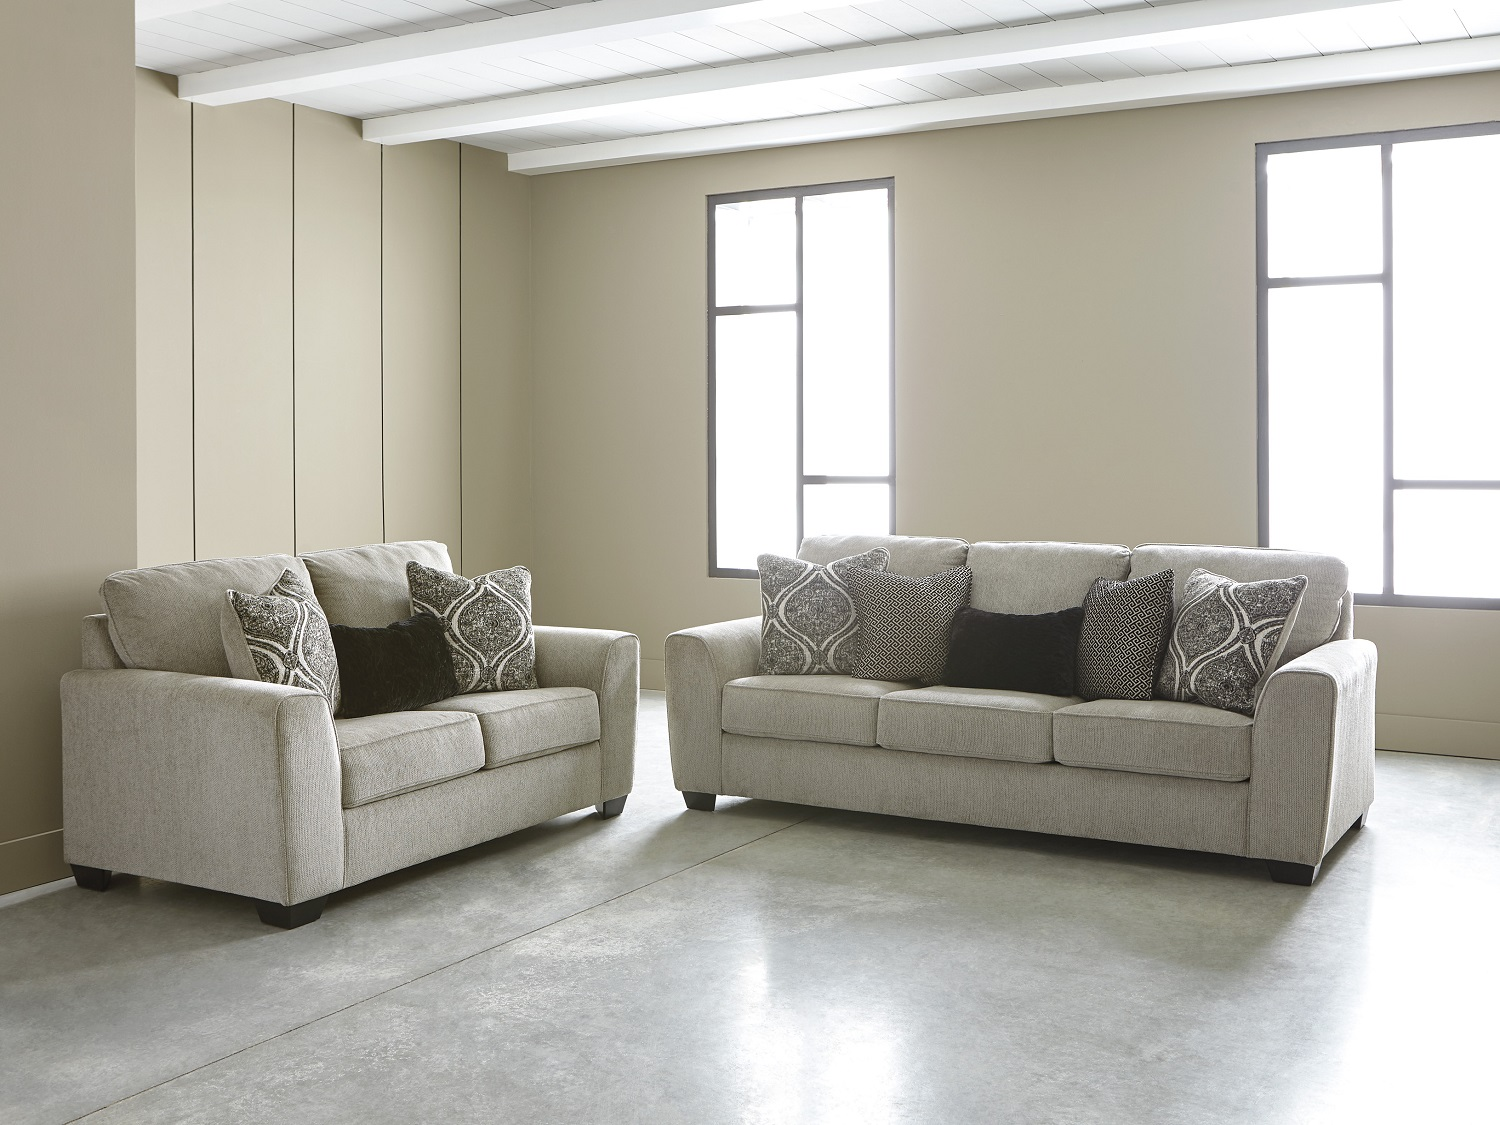 Parlston sofa only, 789, Sofa Sets by Midha Furniture to Brampton, Mississauga, Etobicoke, Toronto, Scraborough, Caledon, Oakville, Markham, Ajax, Pickering, Oshawa, Richmondhill, Kitchener, Hamilton and GTA area